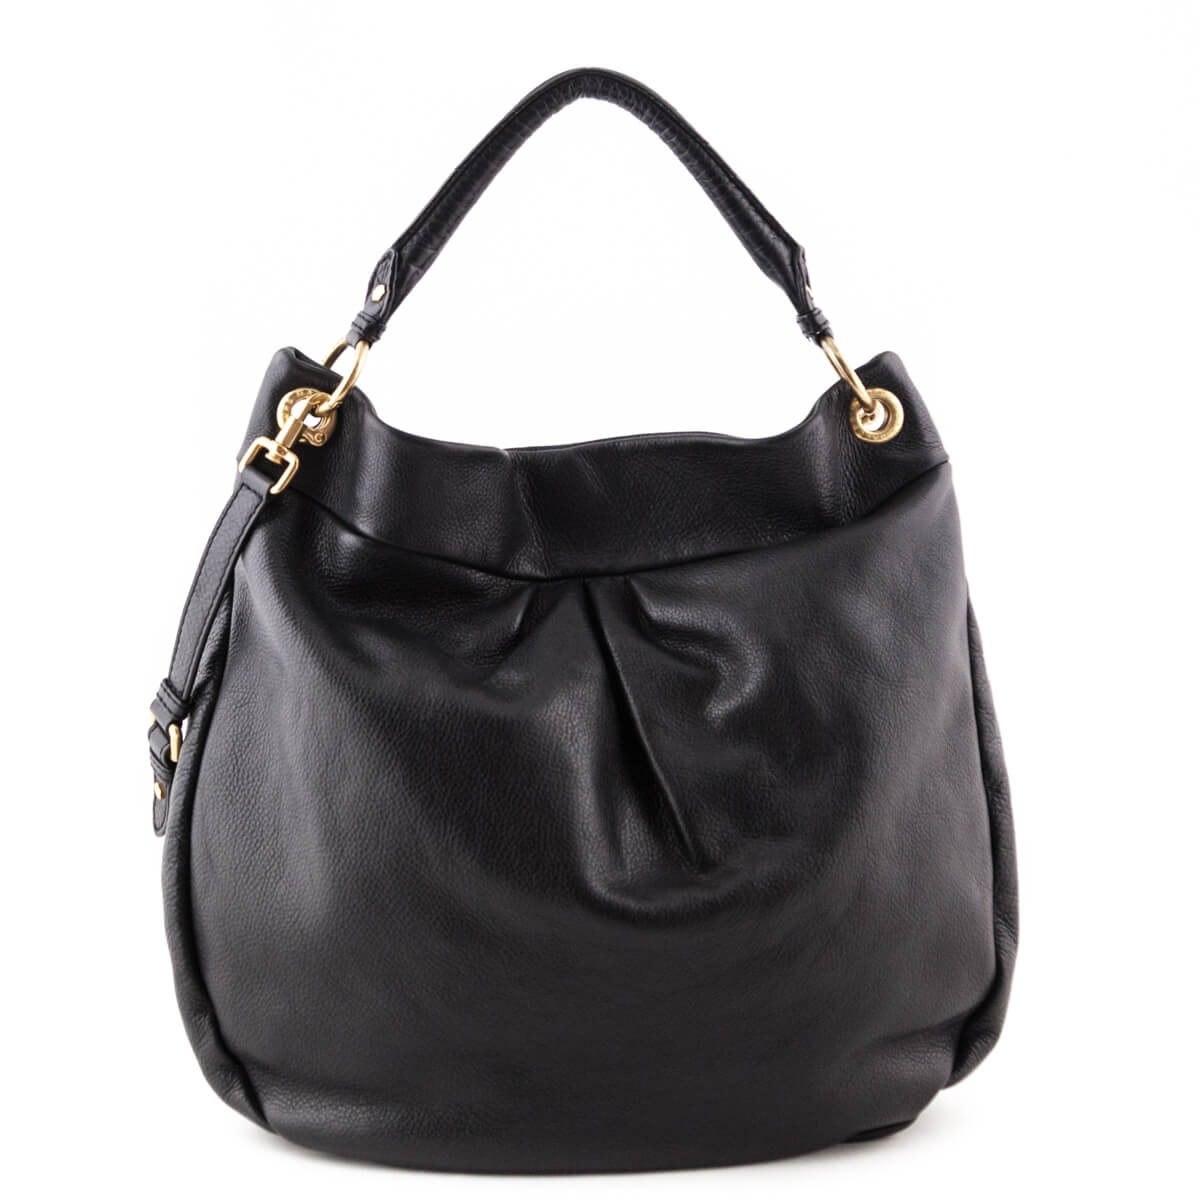 ... Marc by Marc Jacobs Black Classic Q Hillier Hobo - LOVE that BAG -  Preowned Authentic ... b94db41fb47f